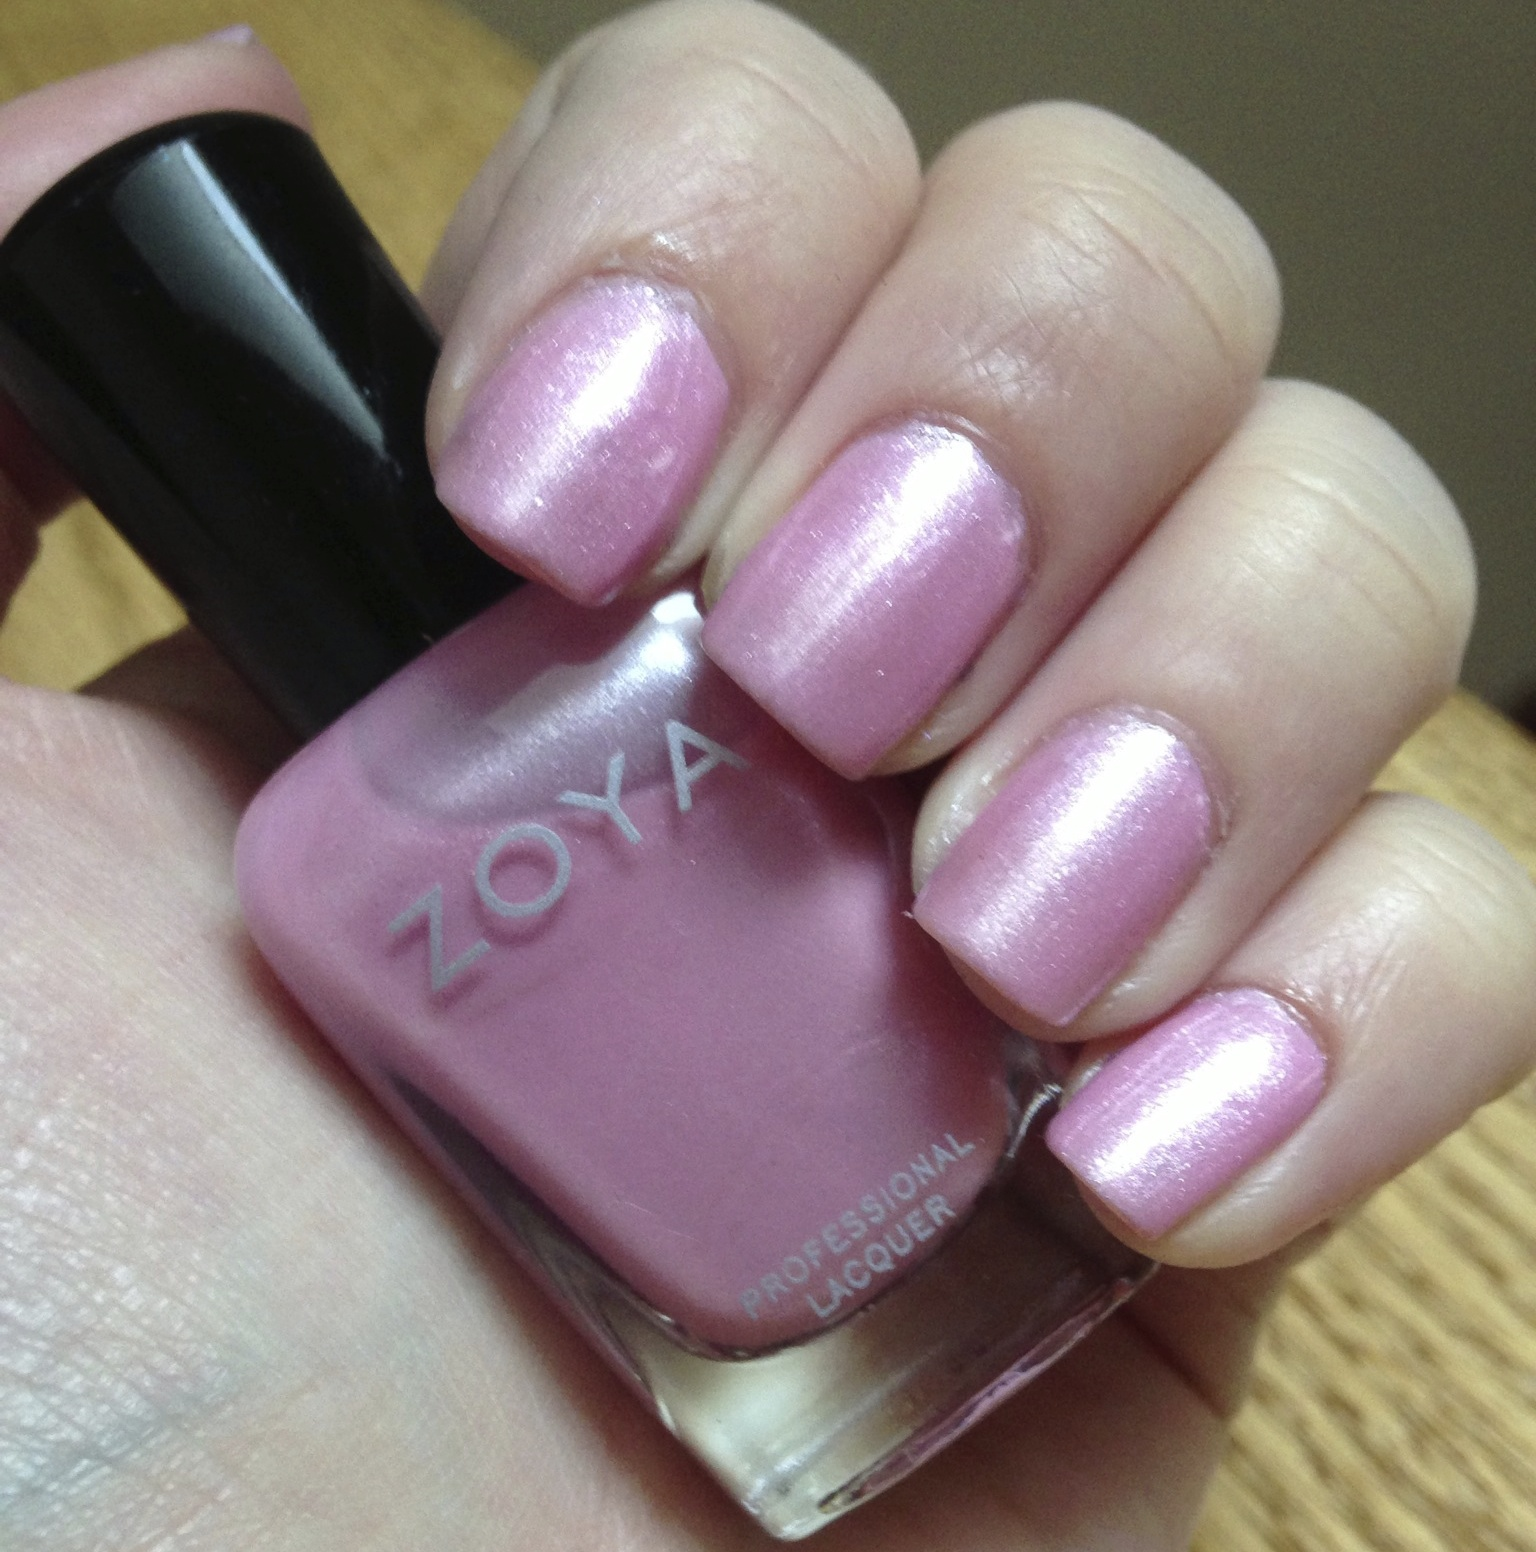 Zoya Lovely Collection for Spring 2013 | Adventures in Polishland